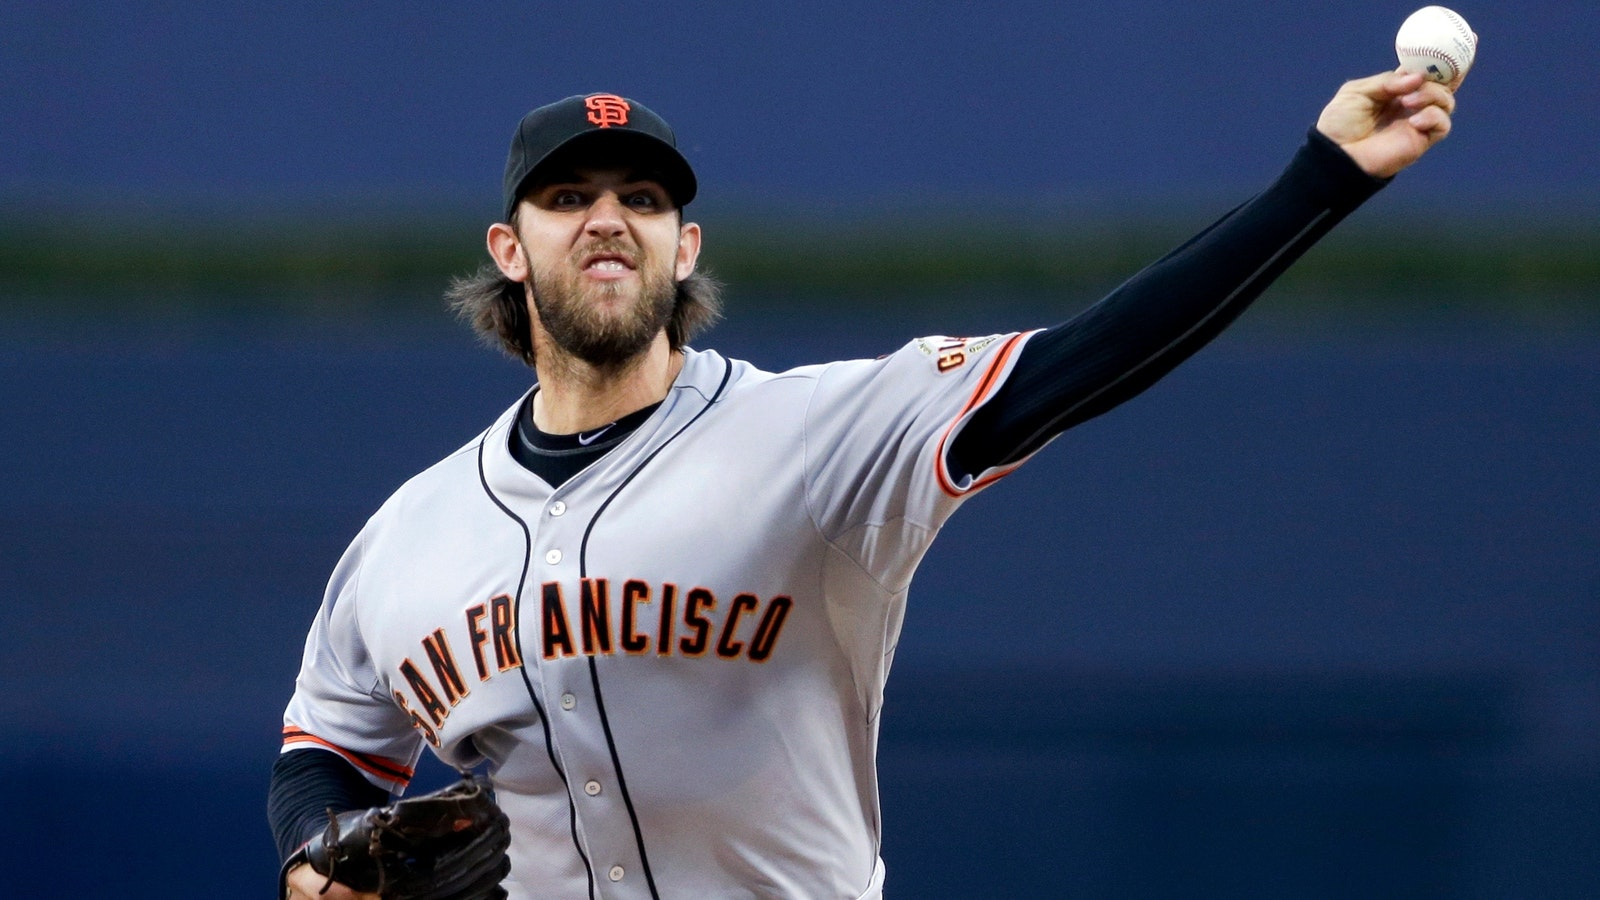 Madison Bumgarner. Photo by AP.